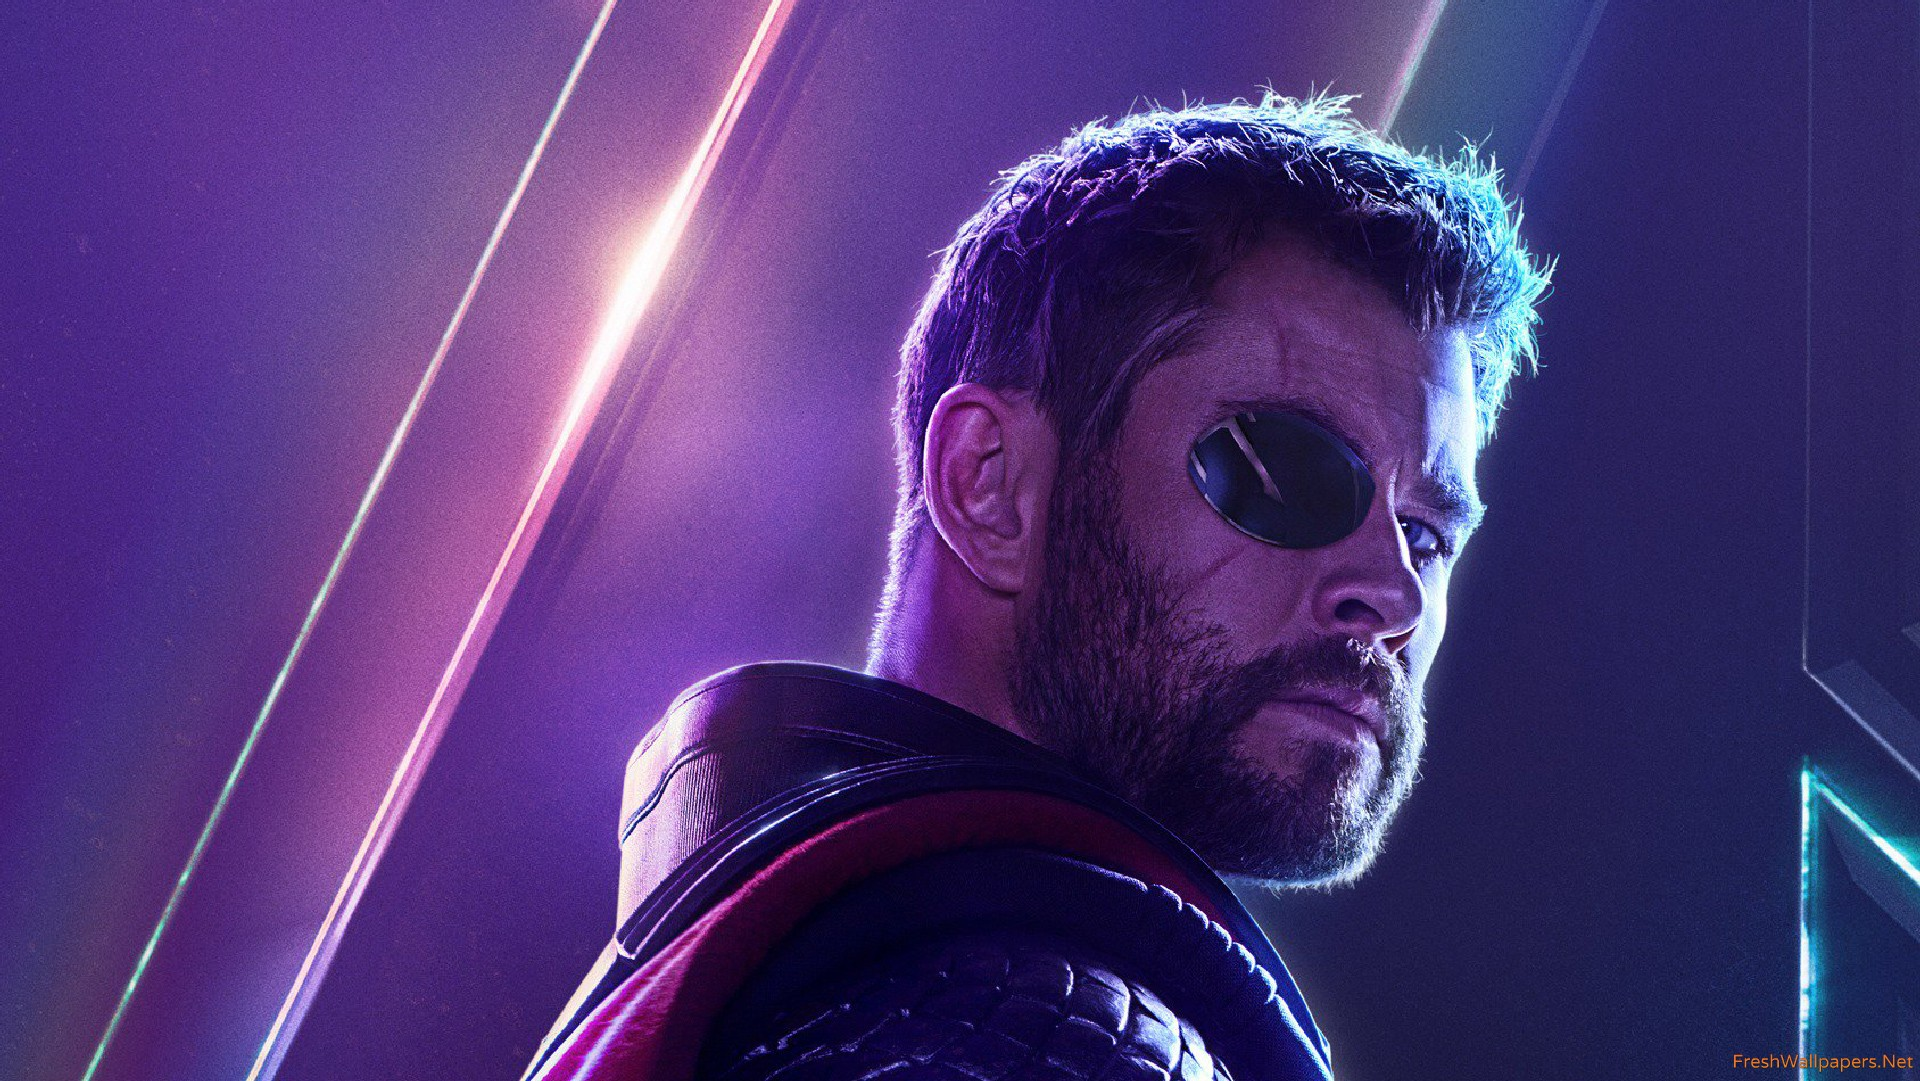 Thor In Avengers Infinity War New Poster wallpaper